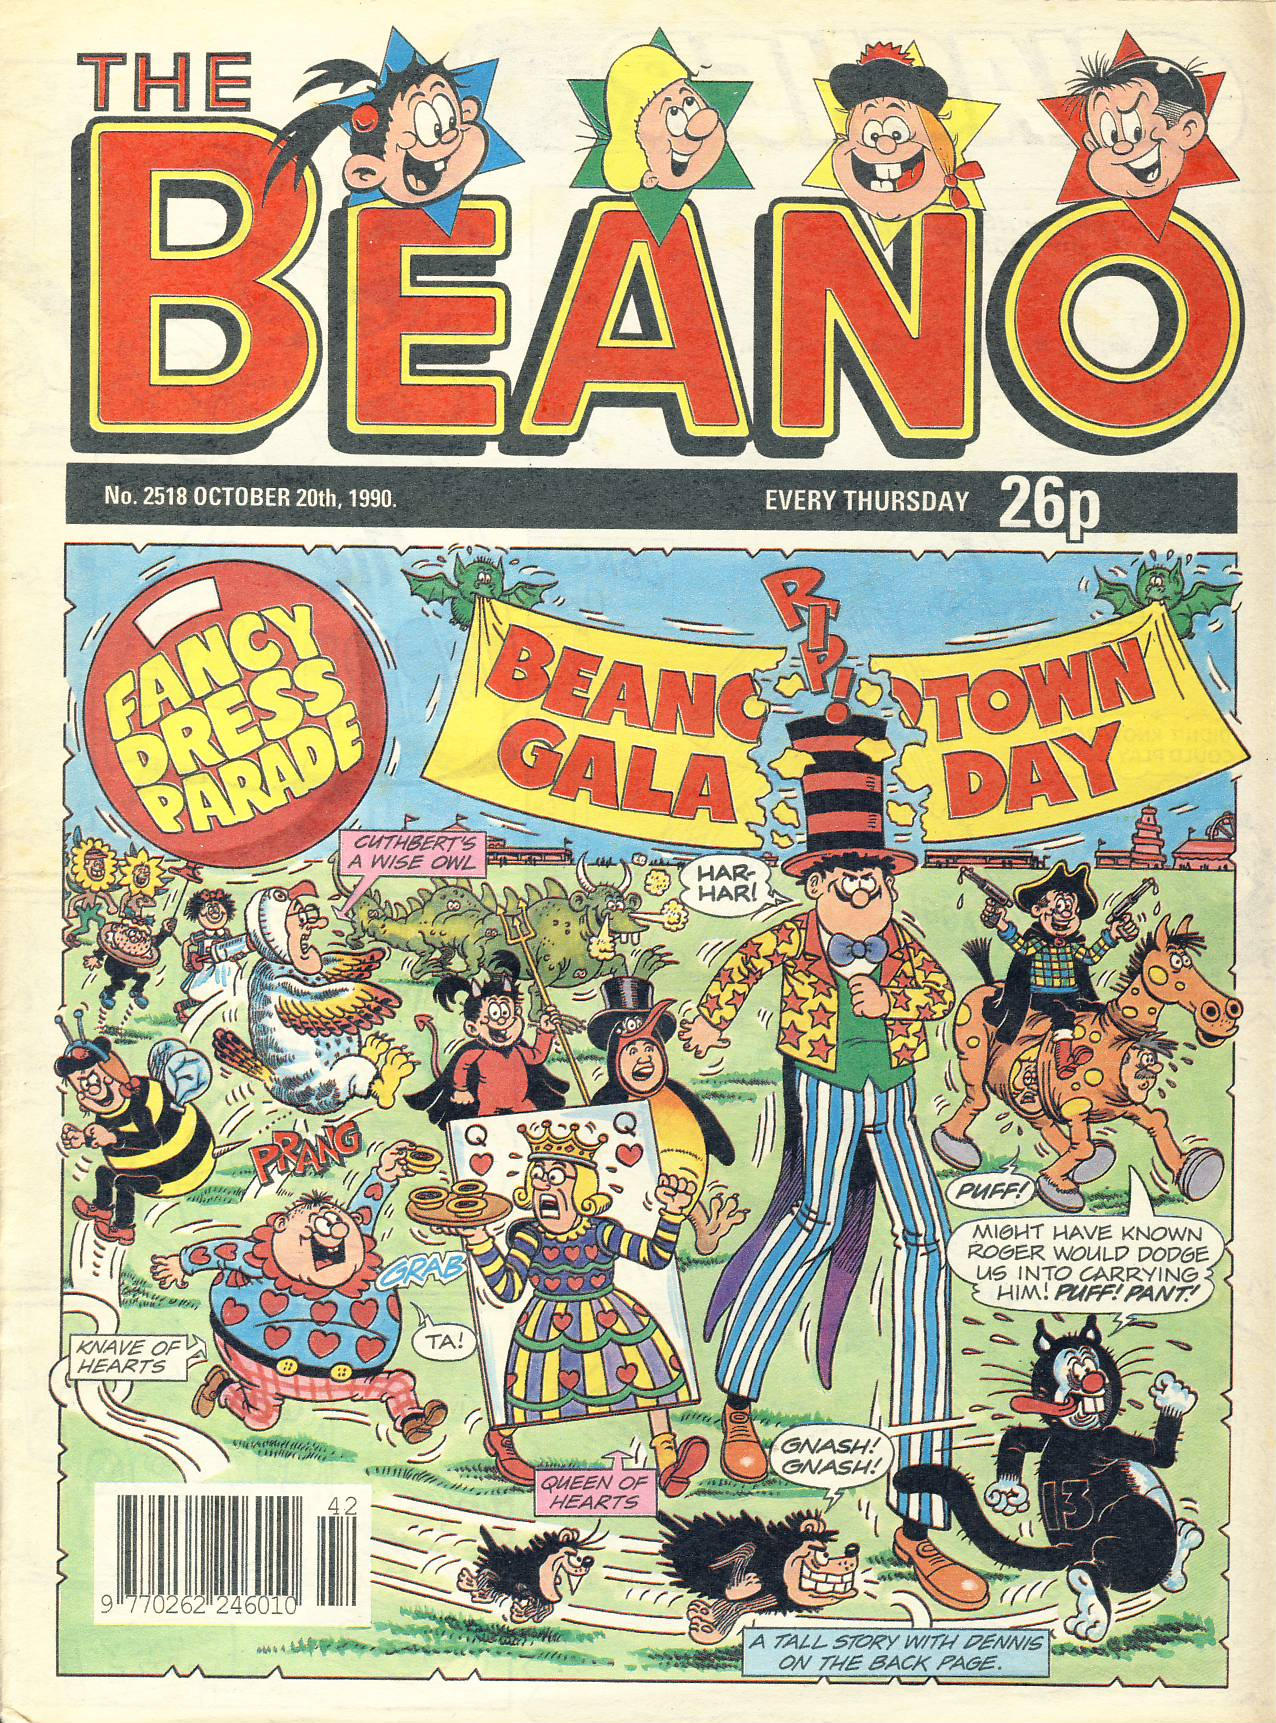 1990 October 20th BEANO vintage comic Good Gift Christmas Present Birthday Anniversary ref314a pre-owned item in good read condition.